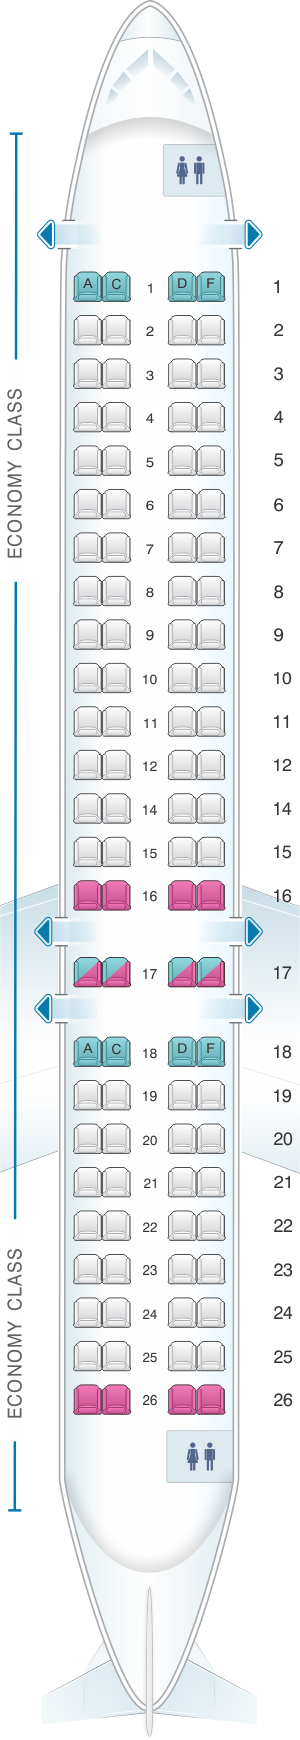 Seat map for Air France Bombardier CRJ 1000